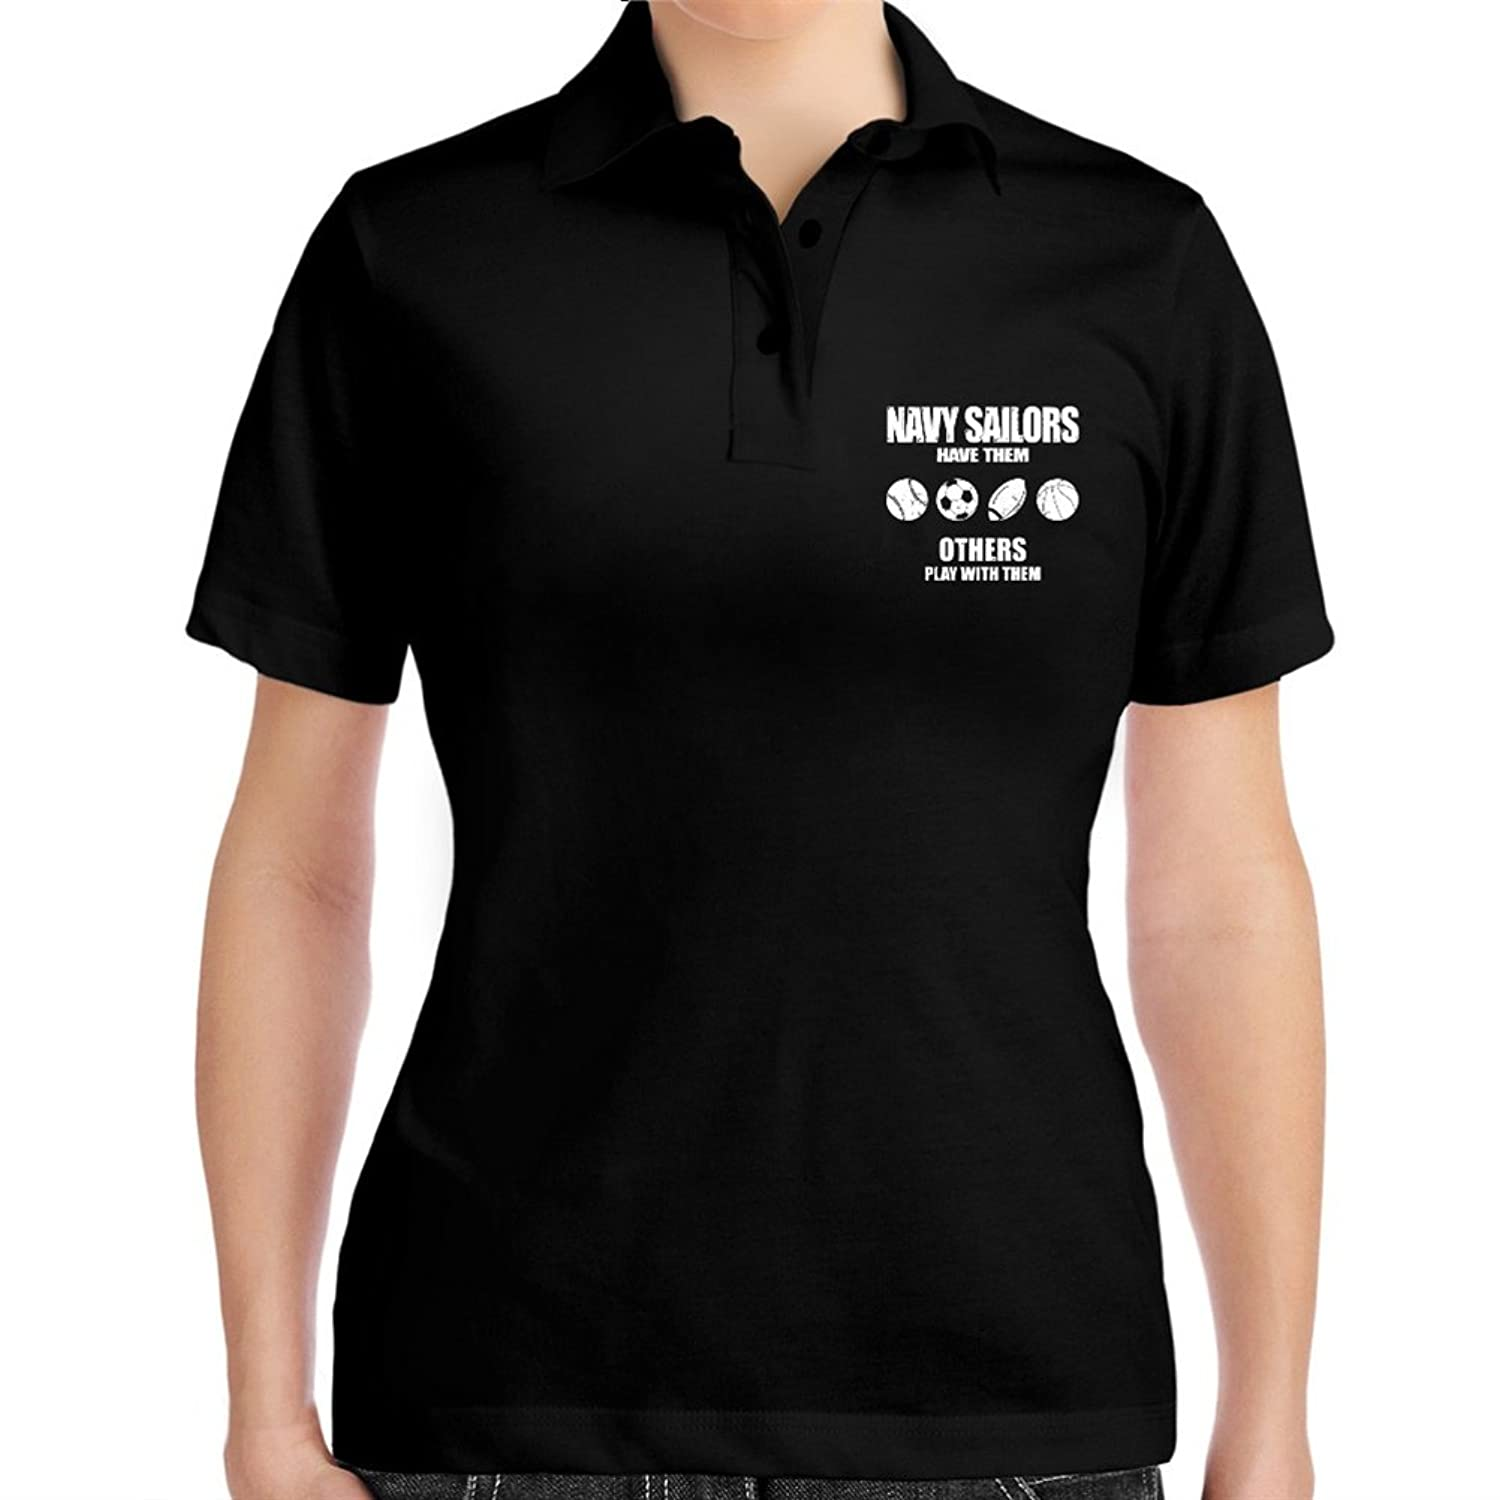 Navy Sailor have them others play with them Women Polo Shirt